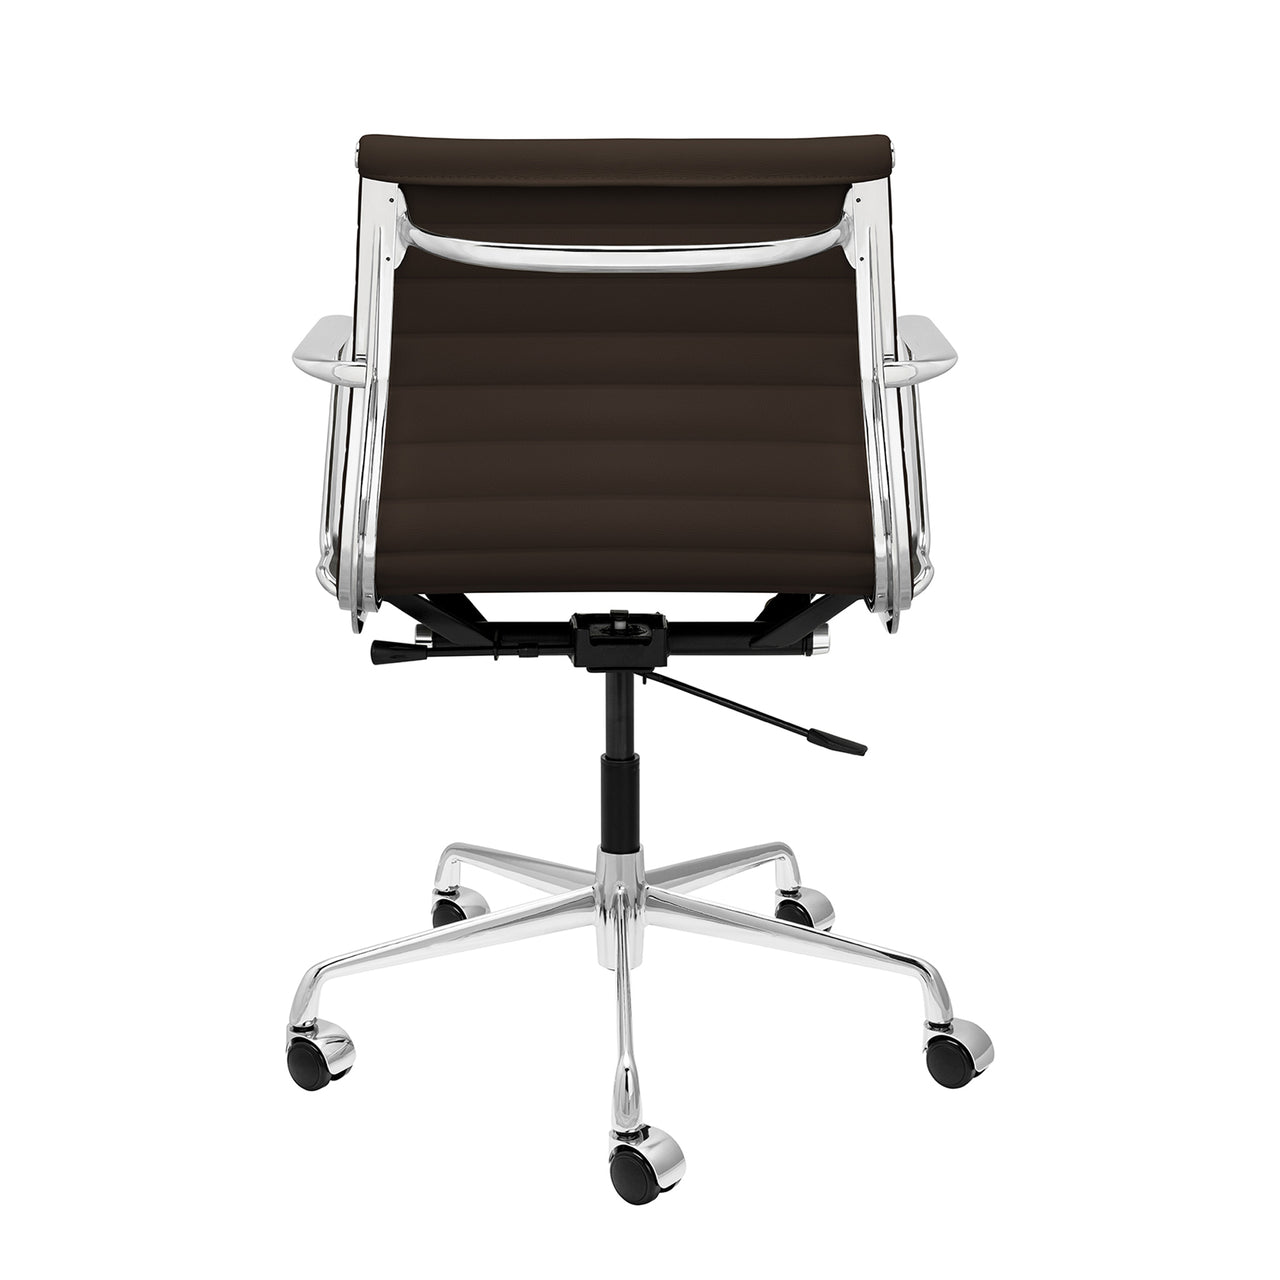 SOHO Pro Ribbed Management Chair (Dark Brown Italian Leather)